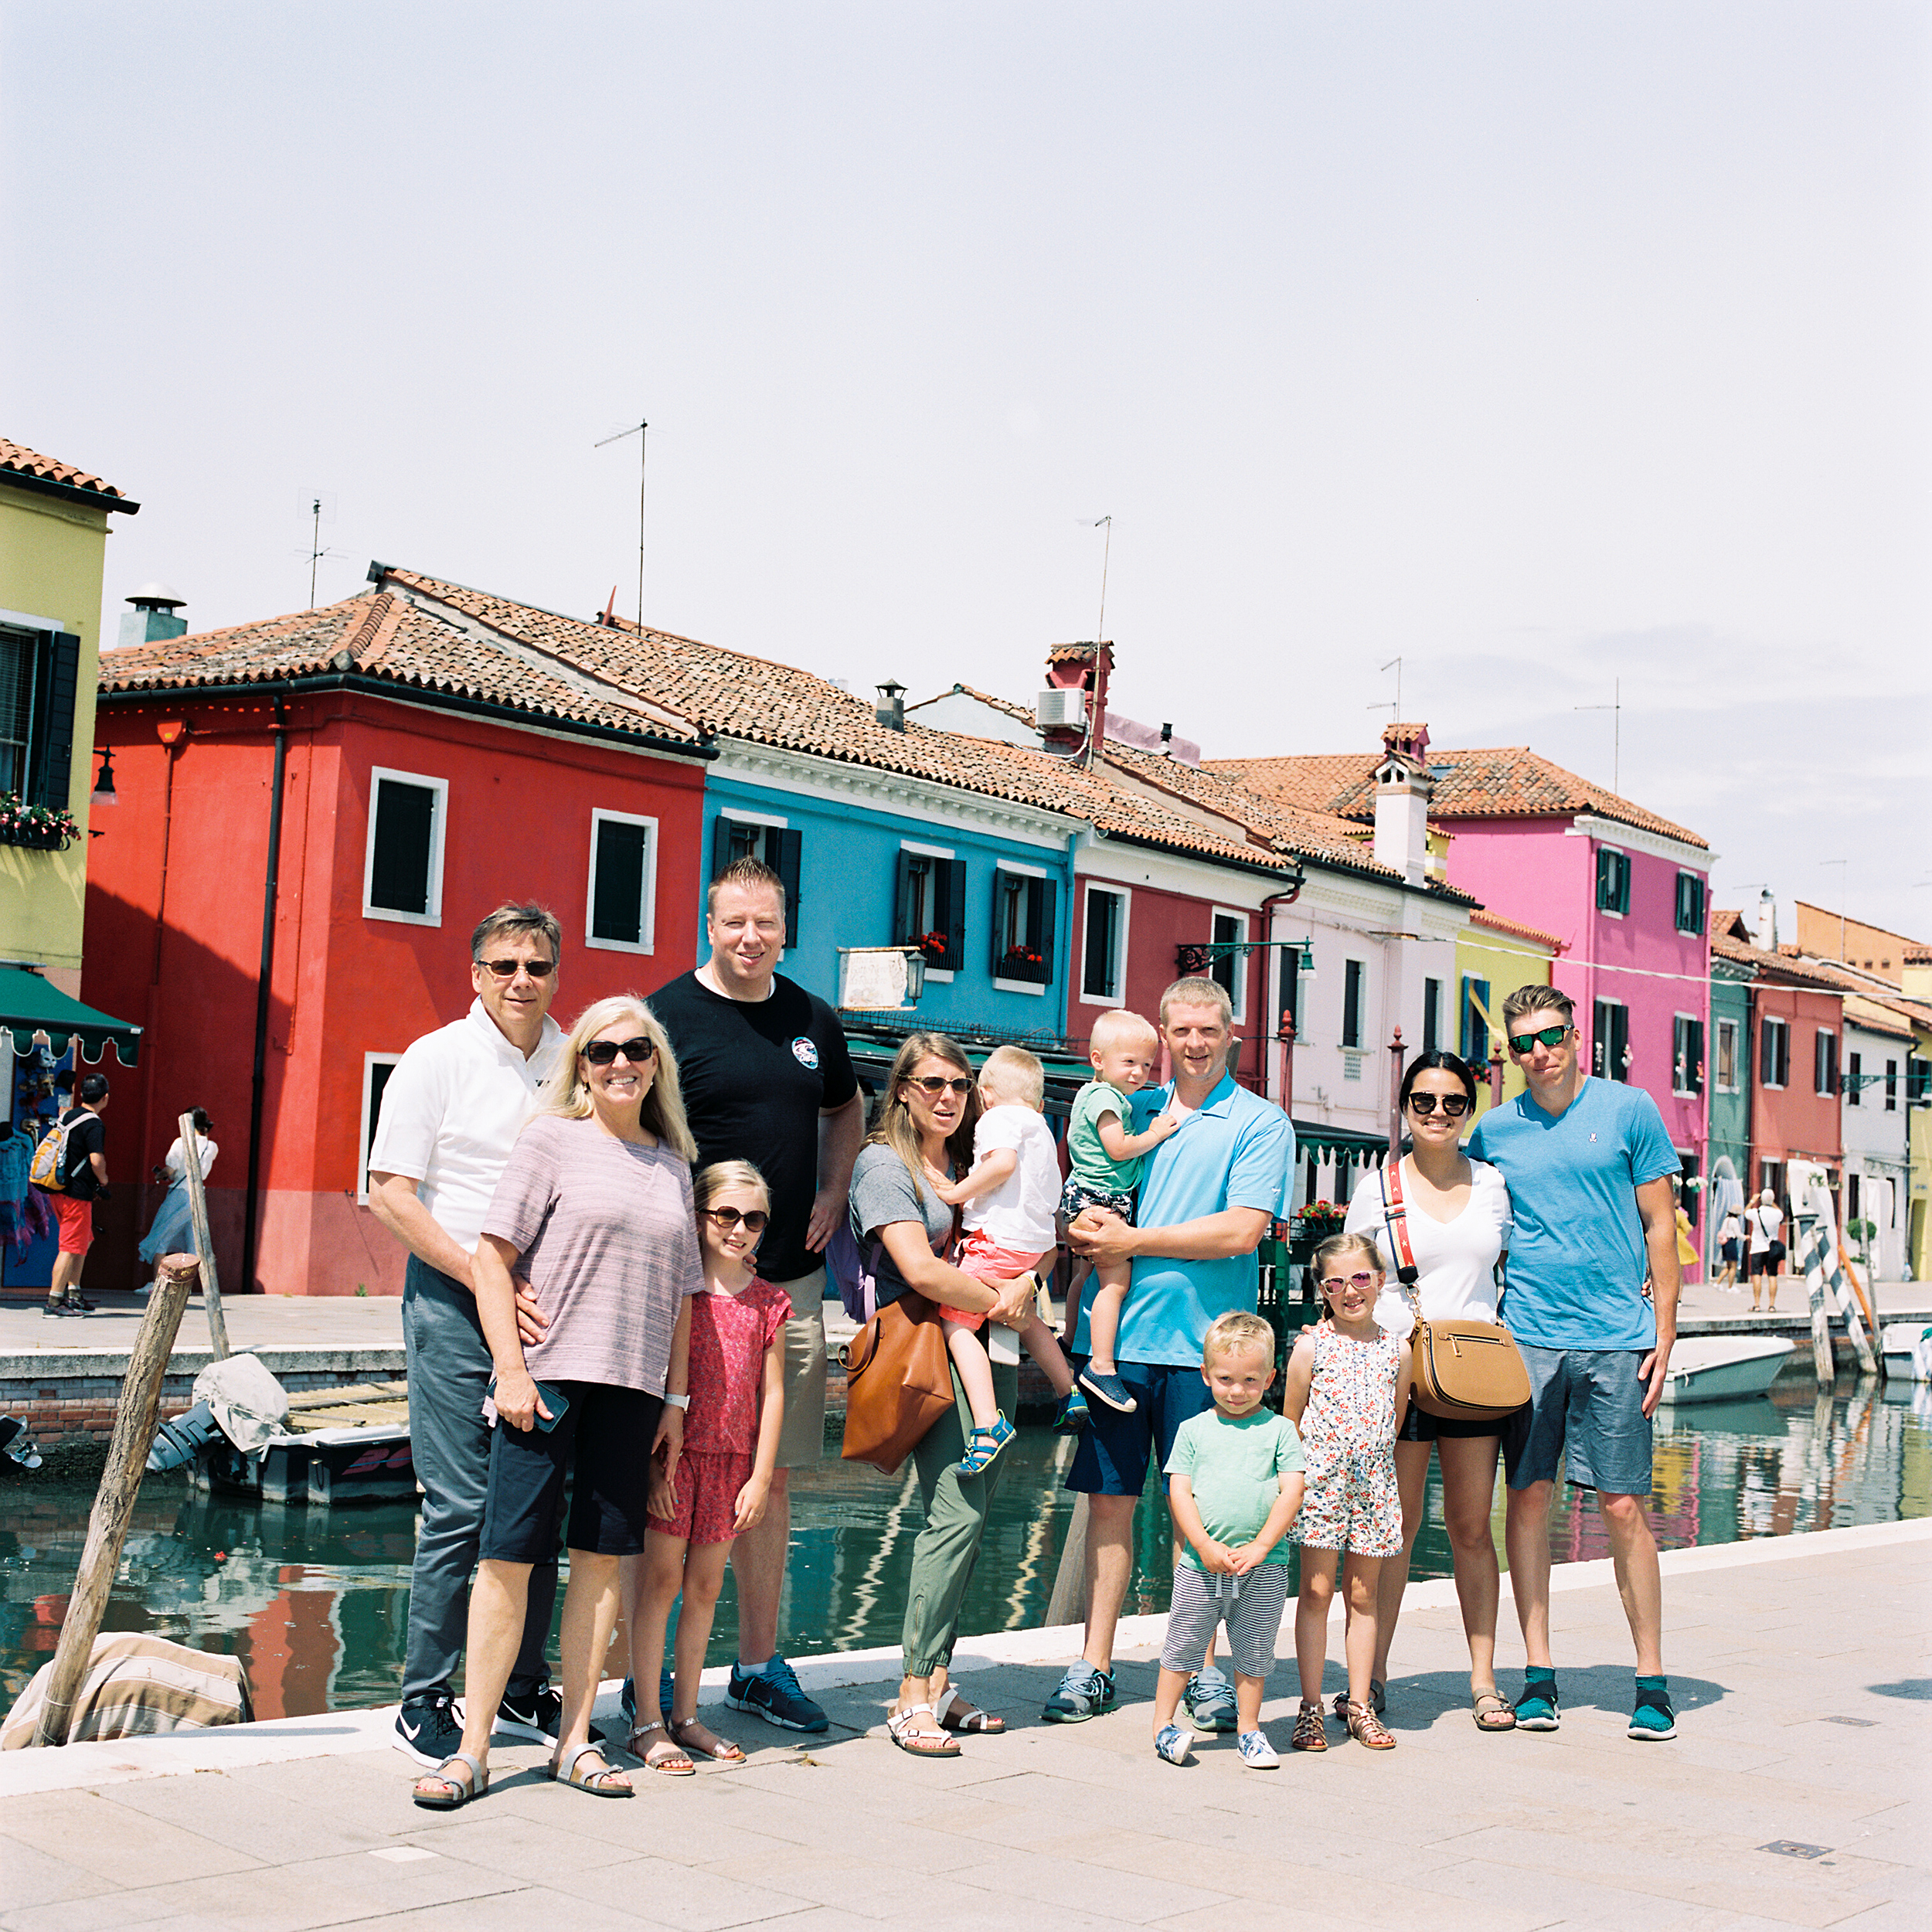 Thanks Venice, Murano, Burano, and Lido and Dolotmites for the fabulous time!  We loved your food, weather, boat rides, mask making, adventuring, and breath taking views.